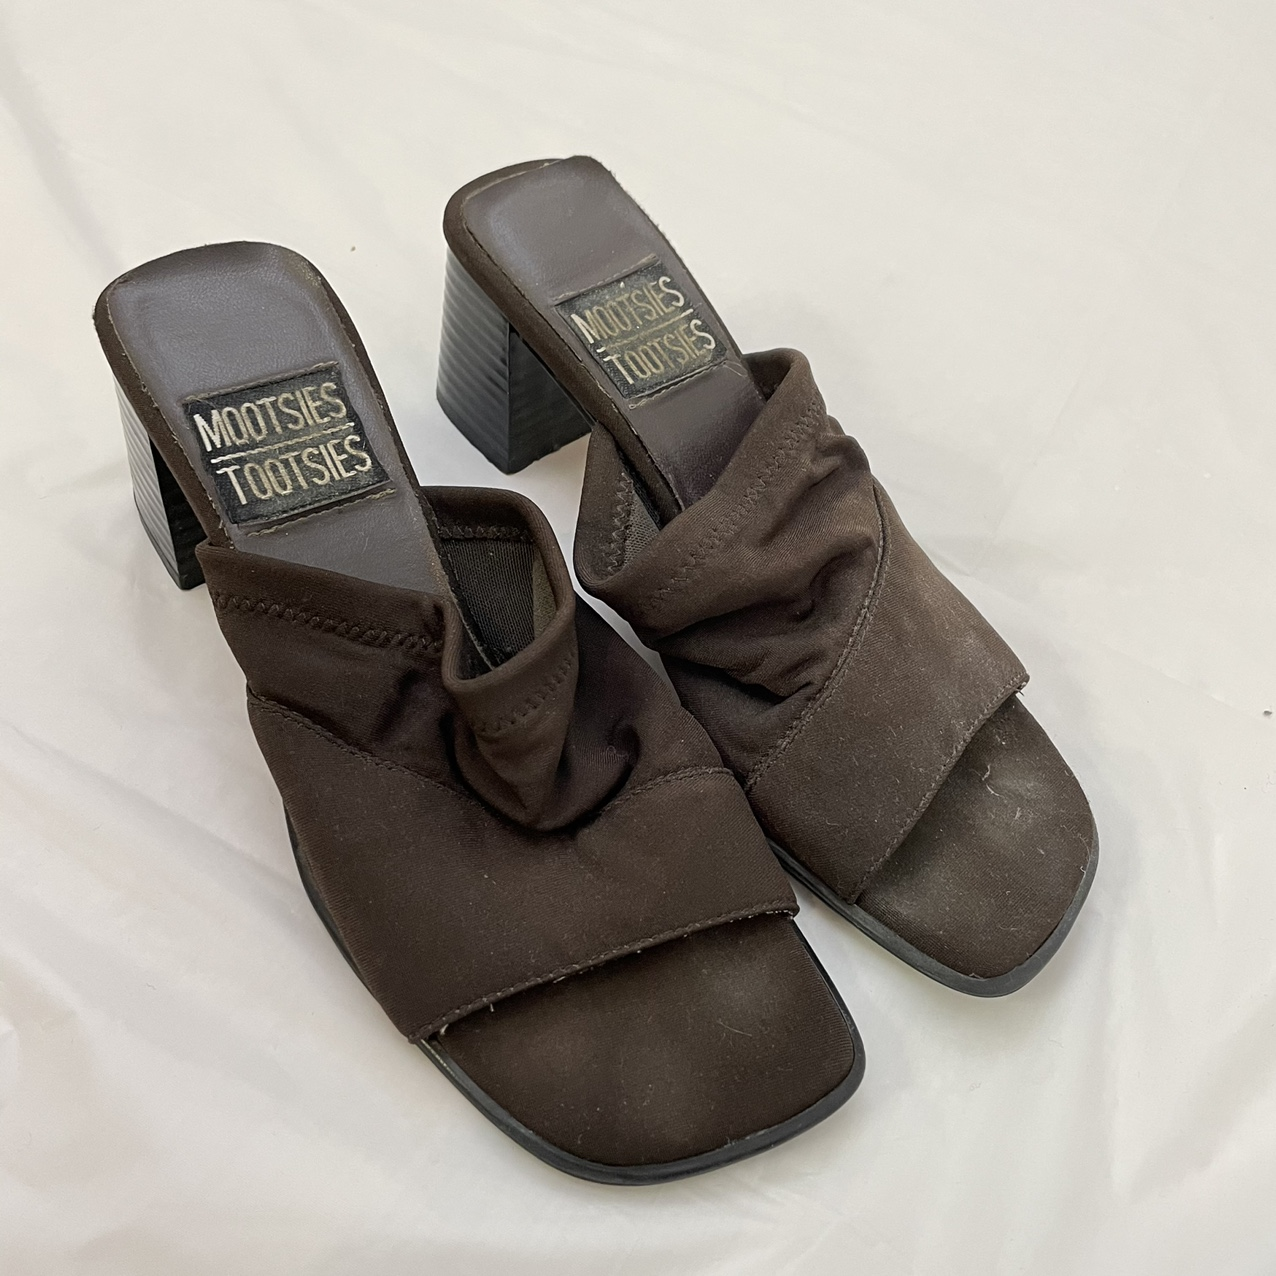 Product Image 1 - brown mules so pretty, have been